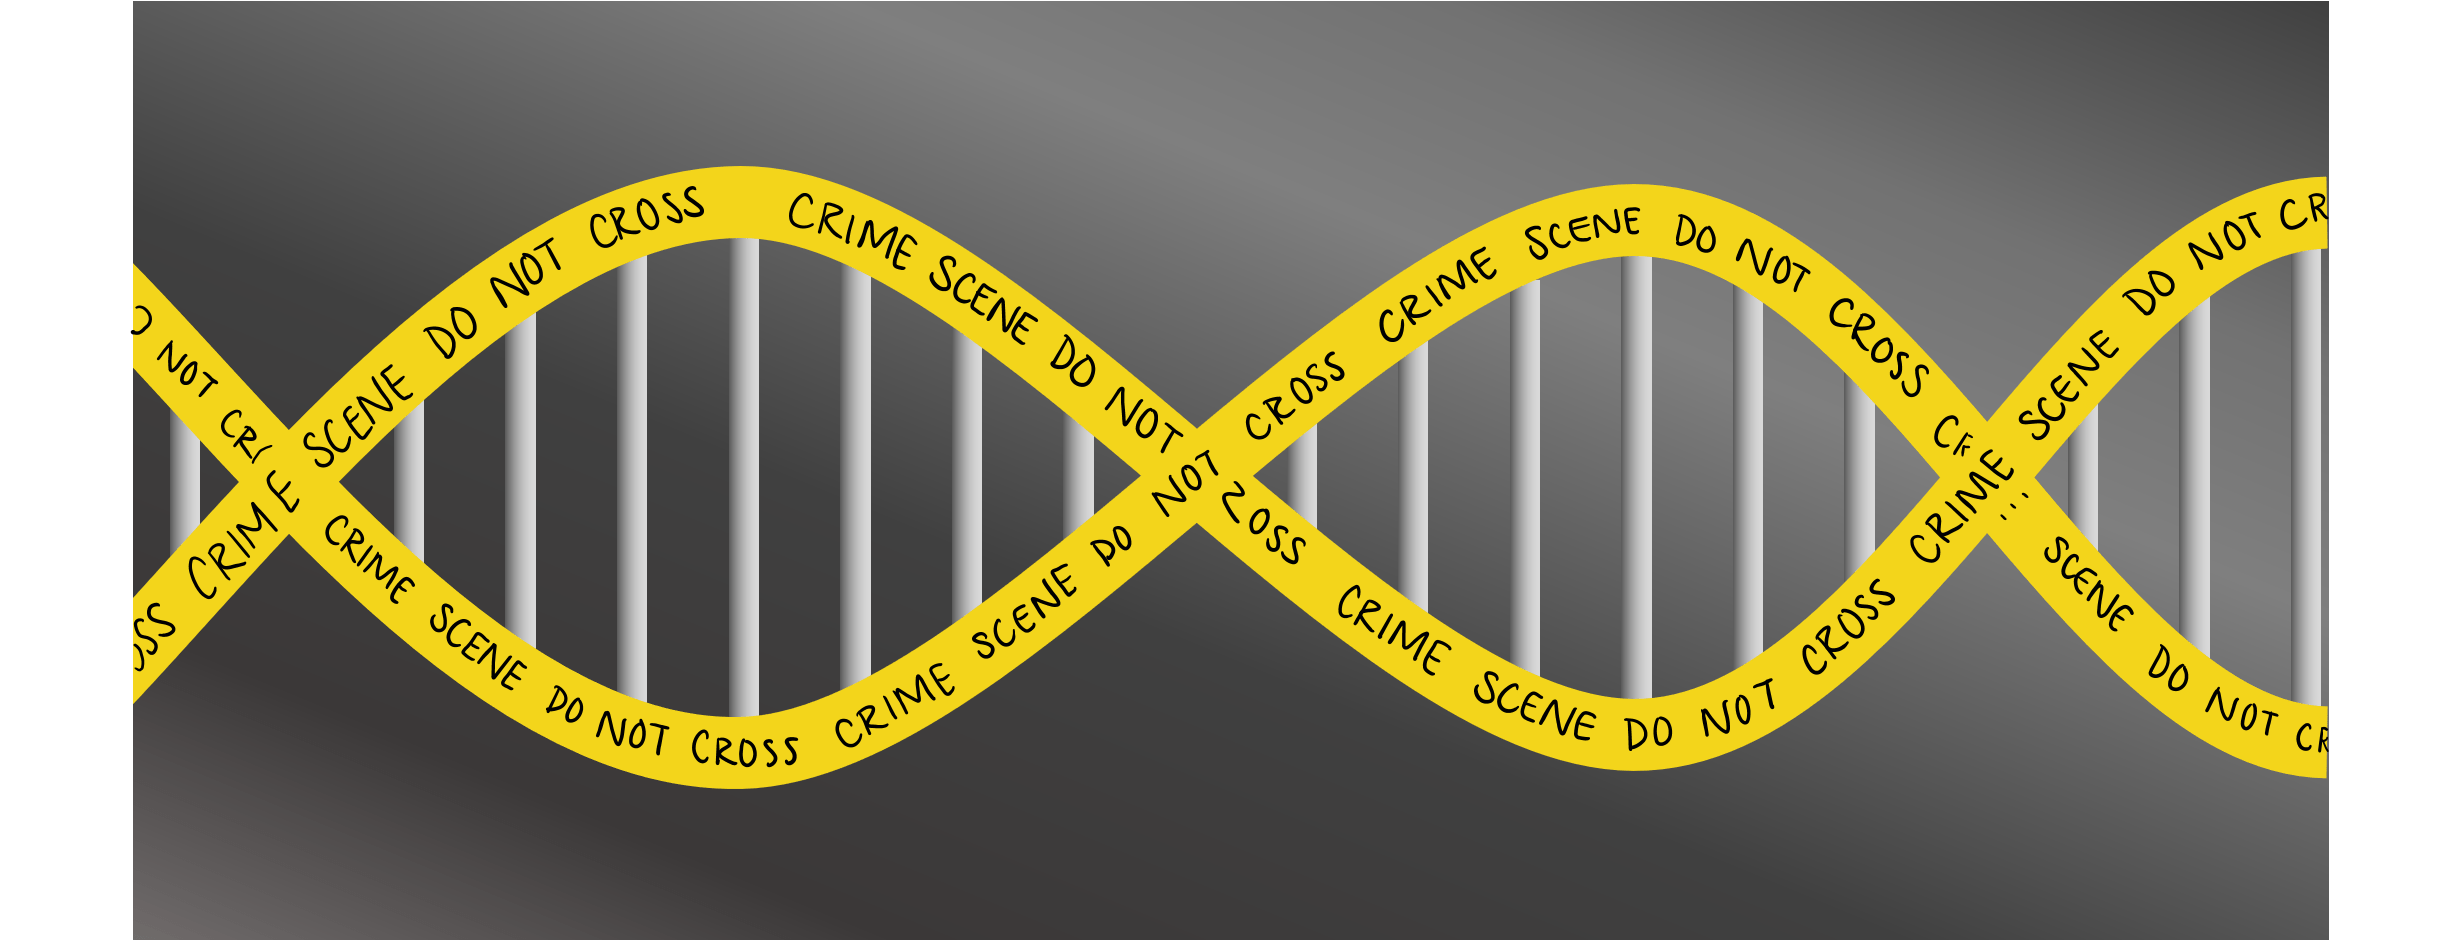 Next Generation Forensics Changing The Role Dna Plays In The Justice System Science In The News